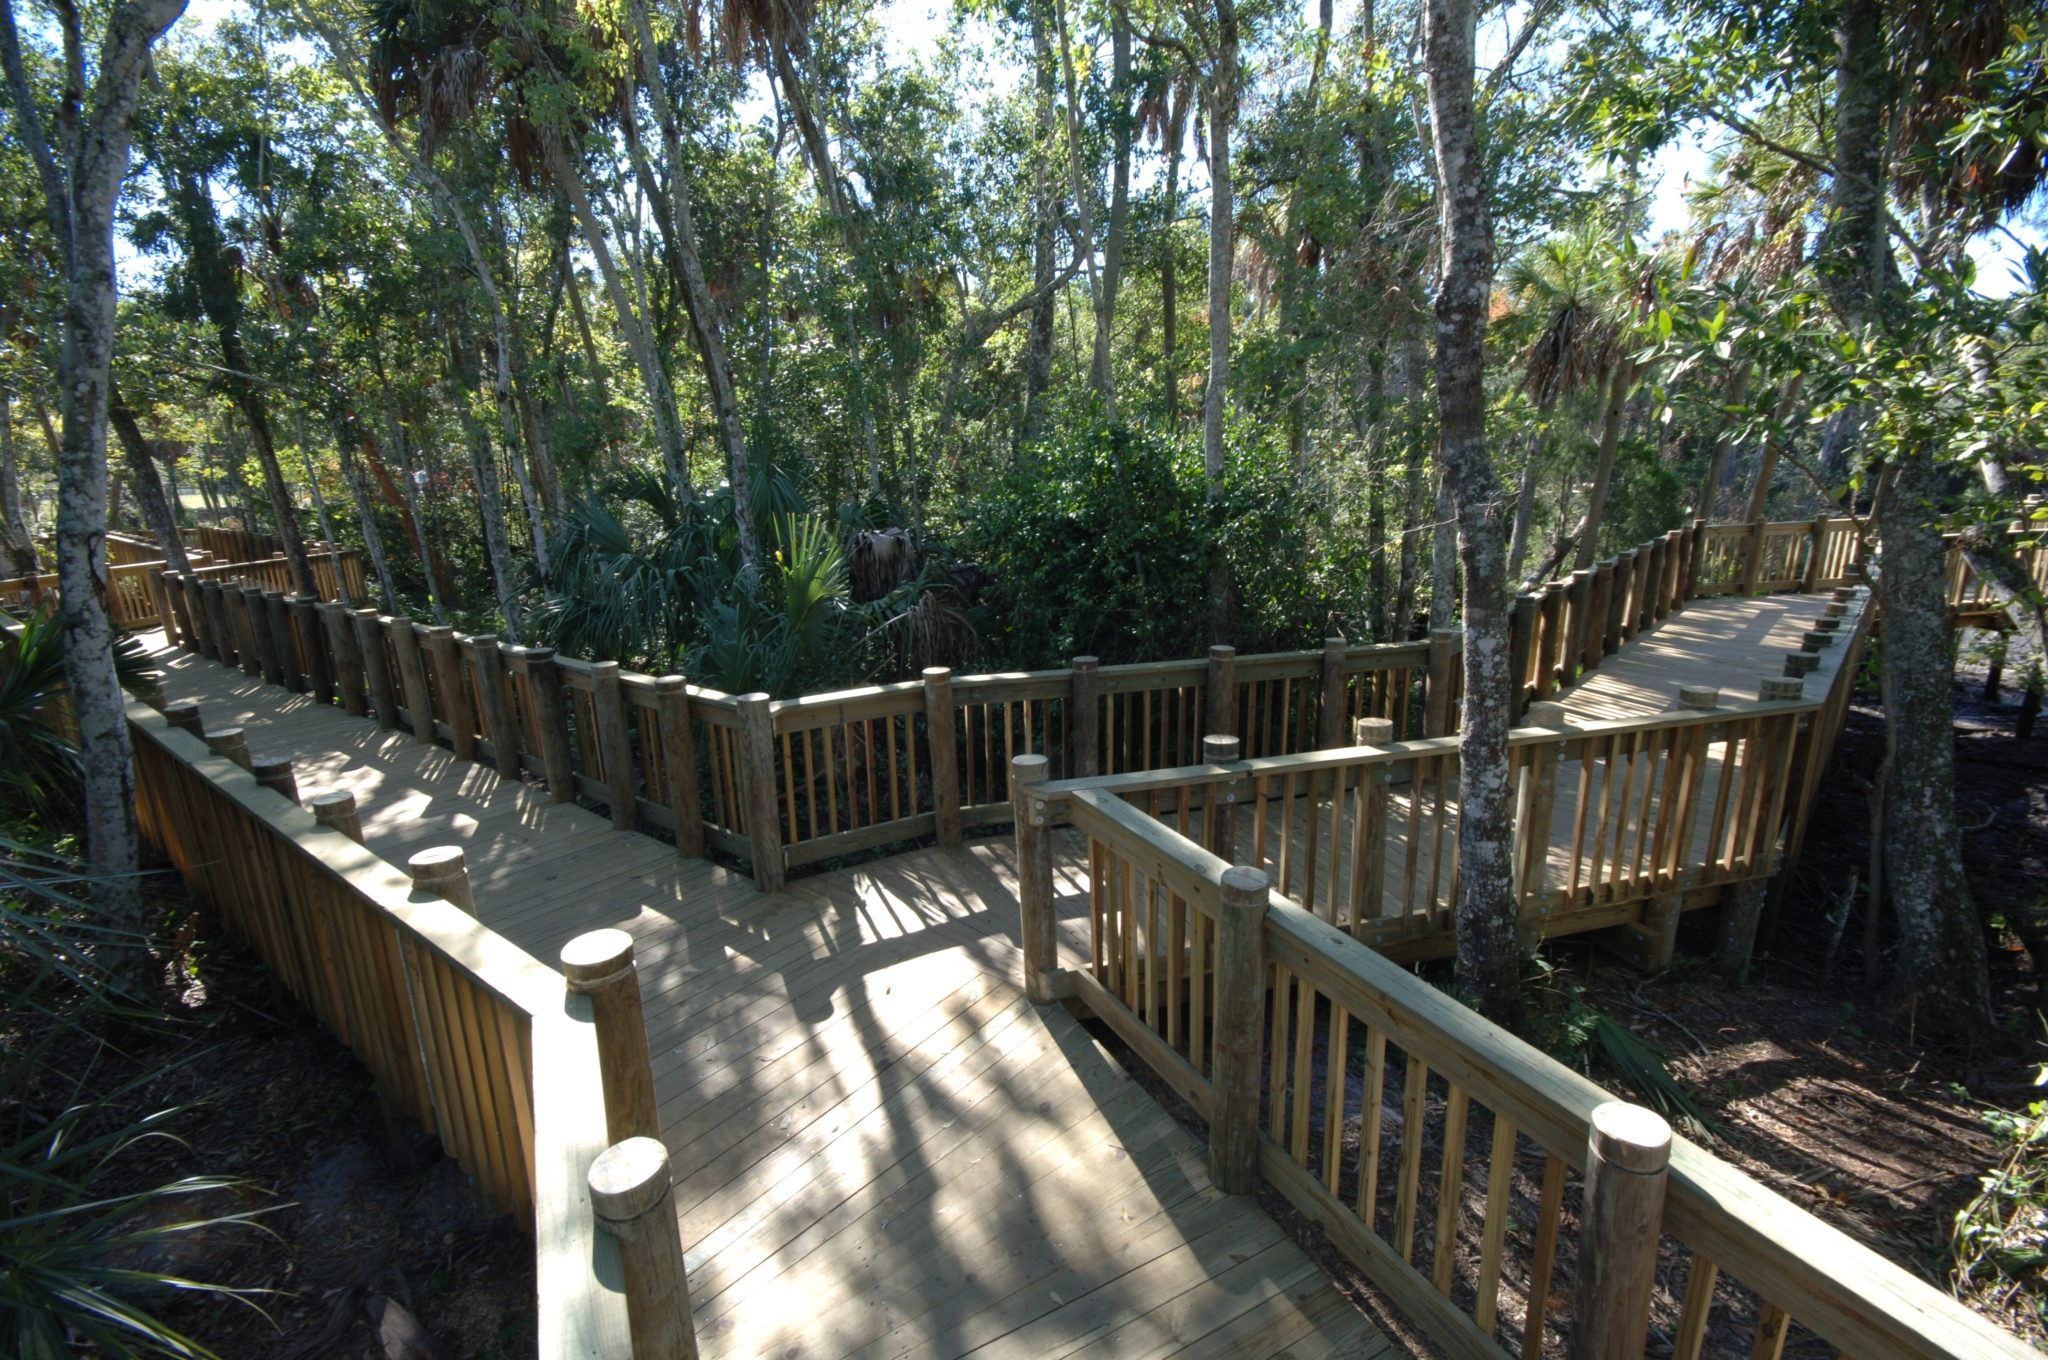 A timber boardwalk through a park with trees with wooden handrail